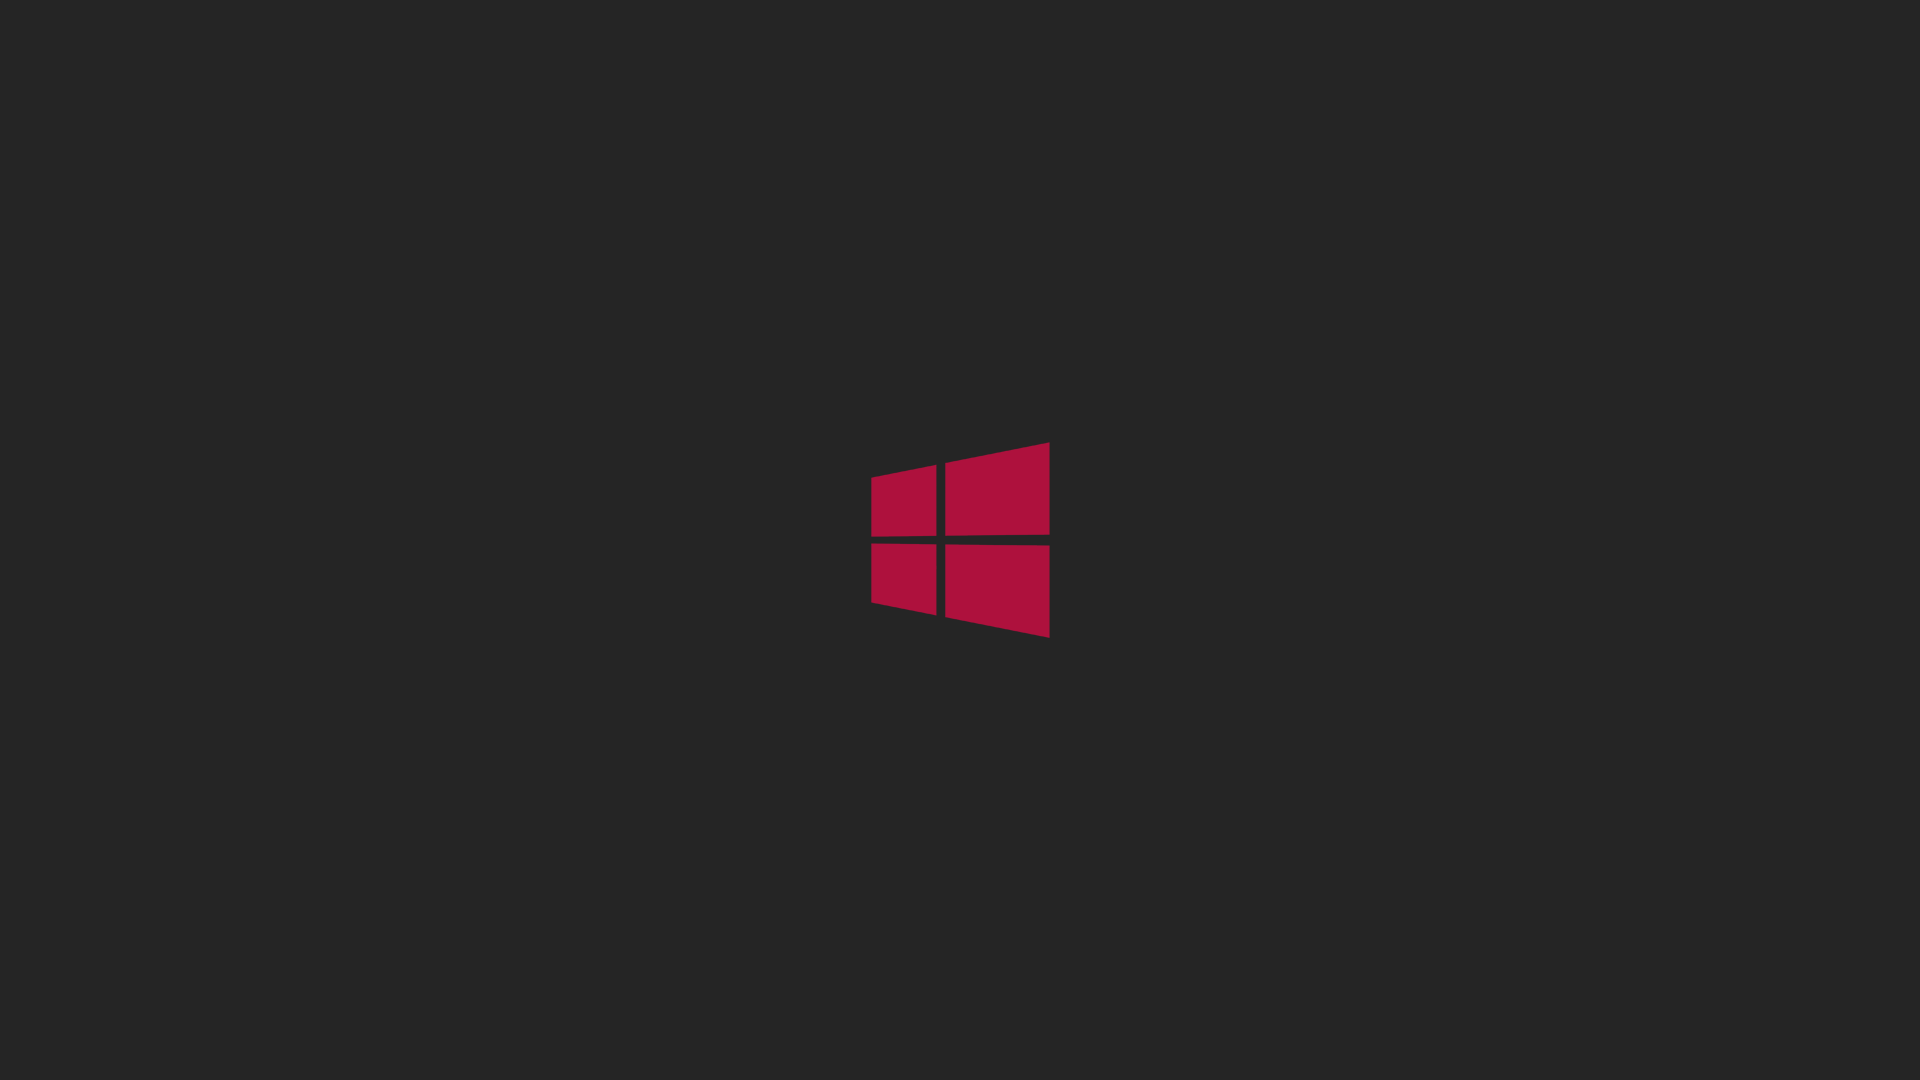 Windows_8_Logo_with_Red_Logo_and_Black_Background